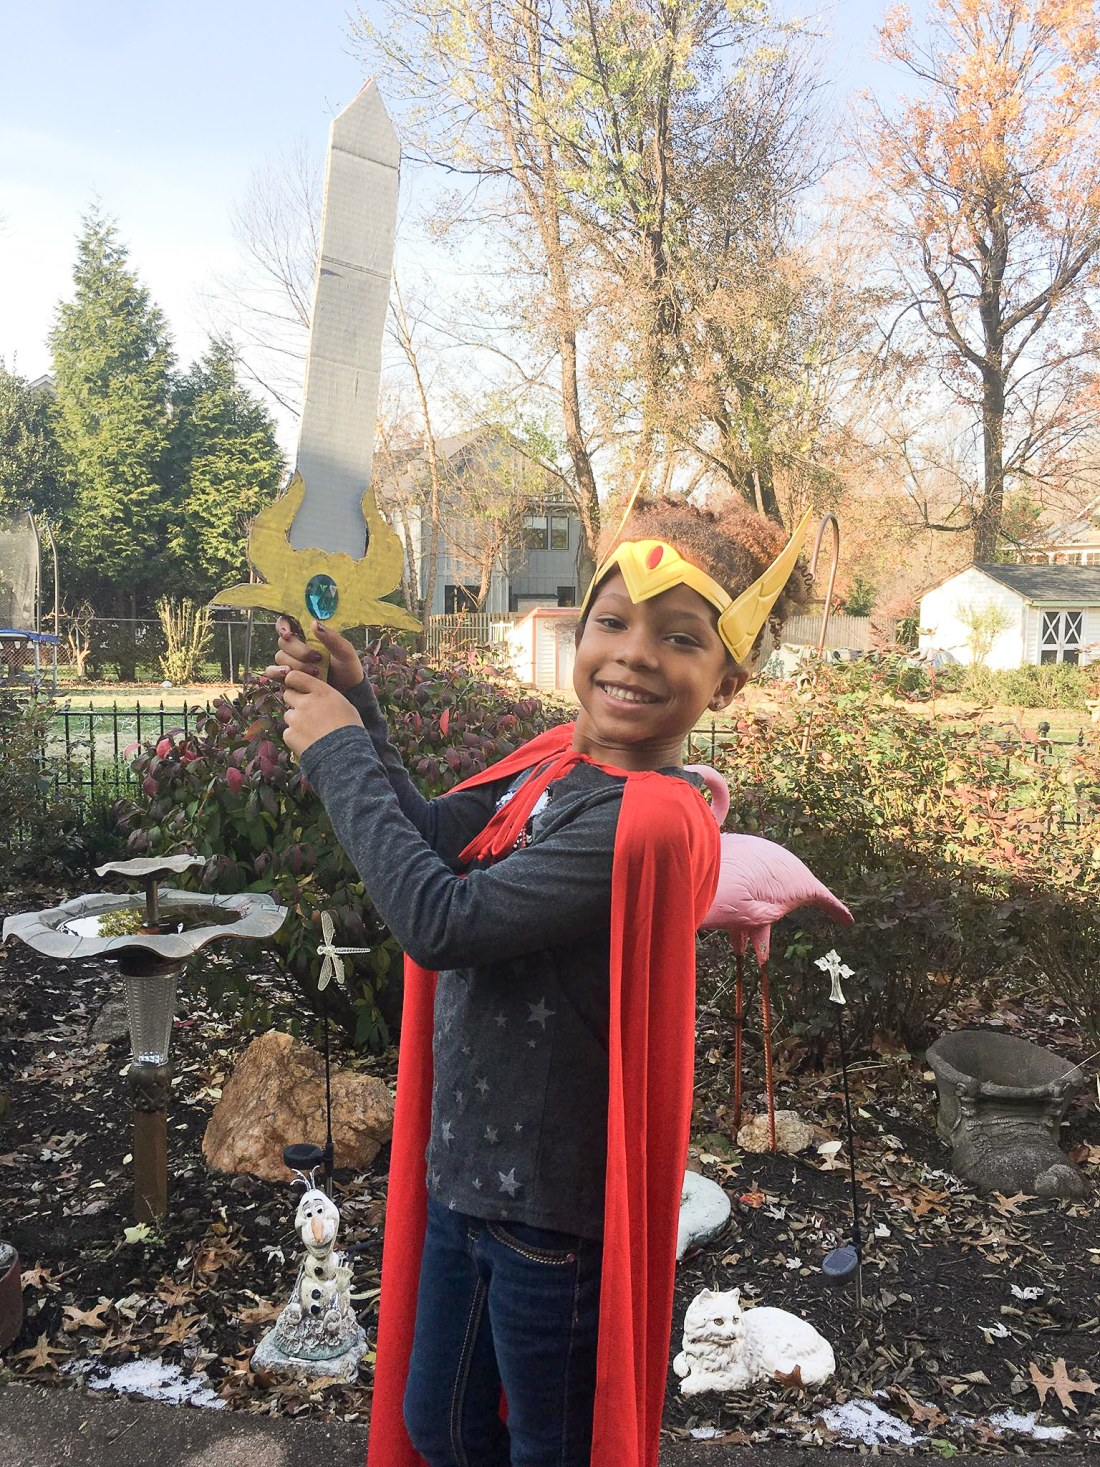 African American Girl Holding she-ra sword craft . The highly anticipated Netflix original, DreamWorks She-Ra and the Princesses of Power, is now available. Stream all 13 episodes only on Netflix today!